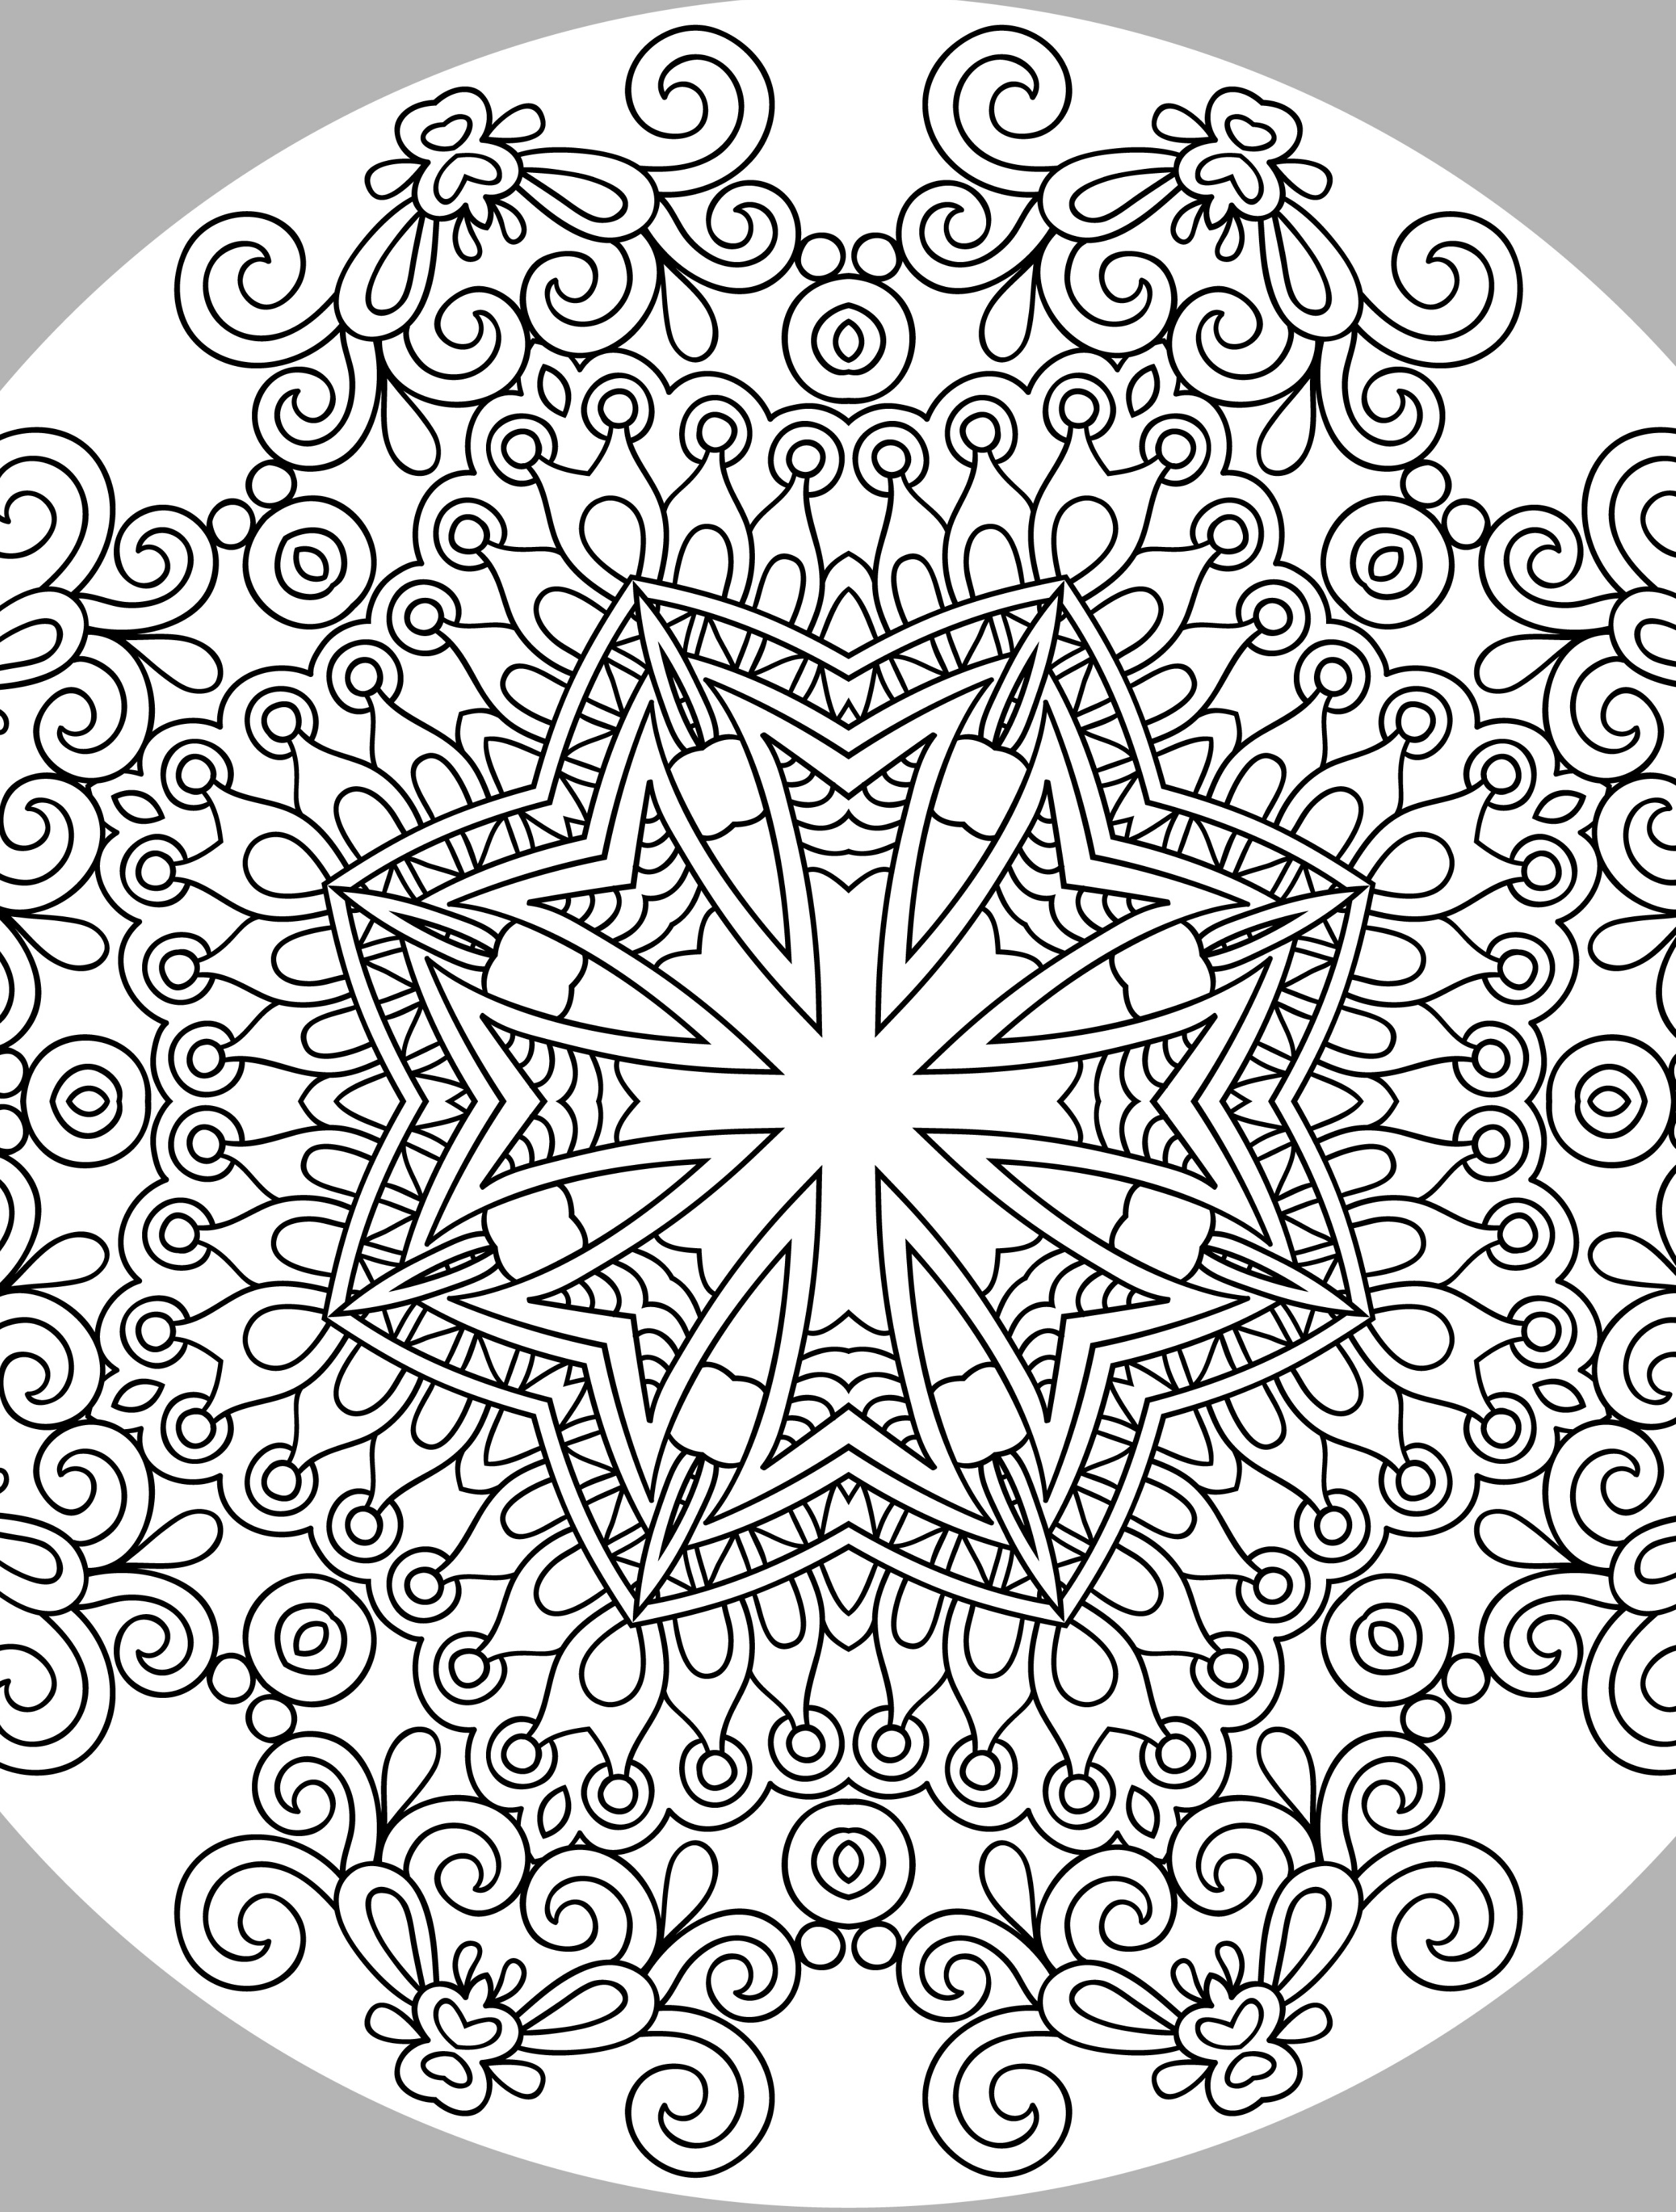 It's just a photo of Holiday Coloring Pages Printable within middle school